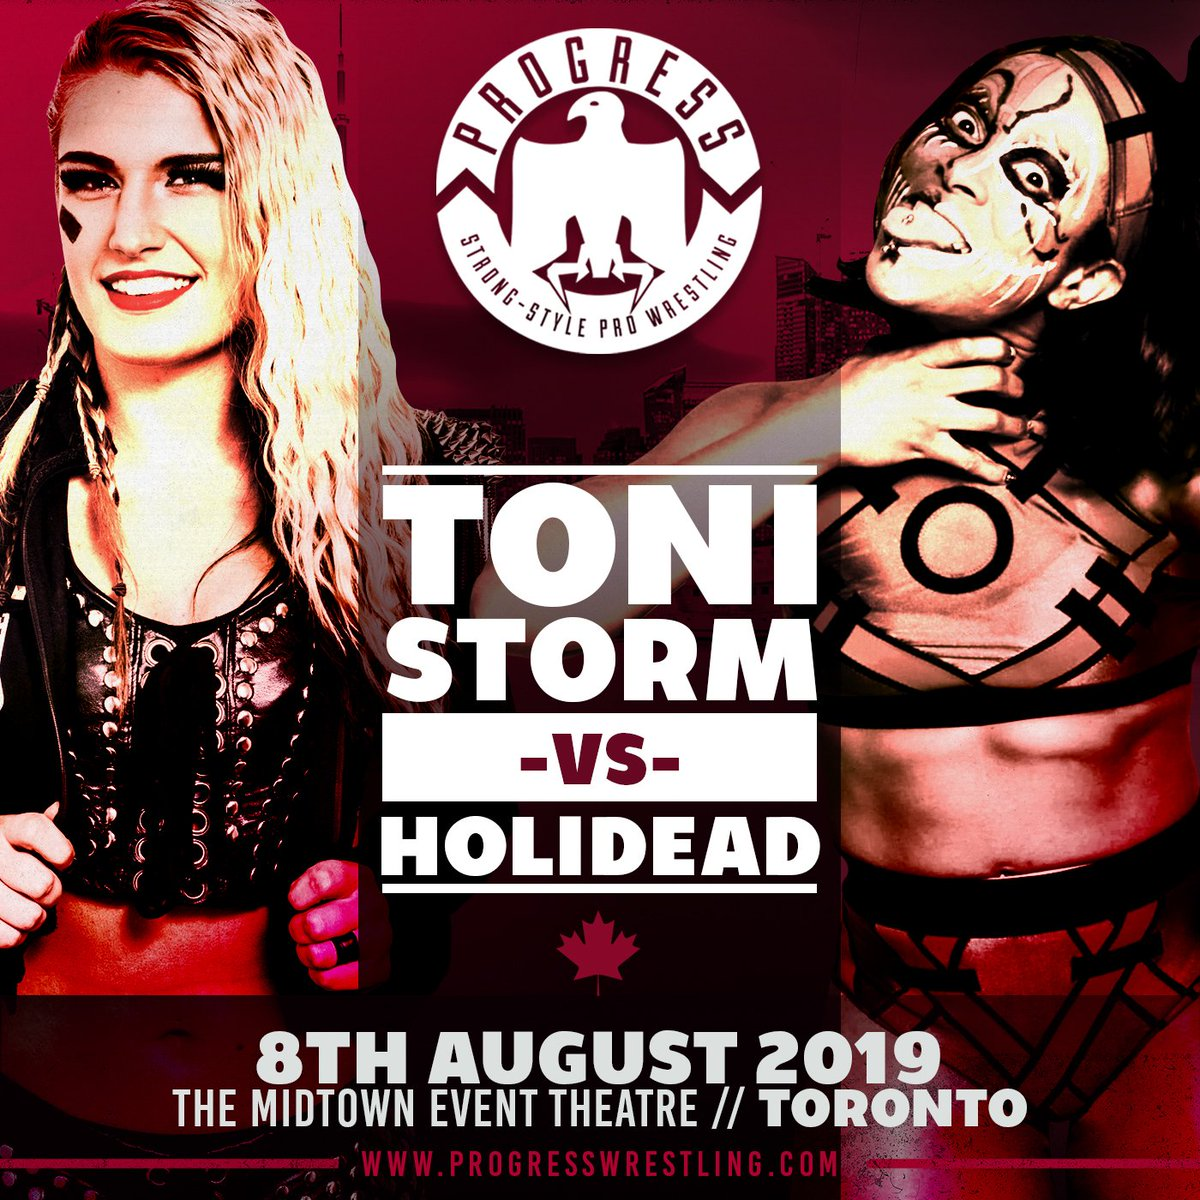 #ProgressToronto: @holidead looks to continue her momentum towards the Women's Title... @tonistorm_ stands in her way!  Thursday 8th August, Toronto MET. Tickets: http://ticketscene.ca/smash  #ThisIsPROGRESS